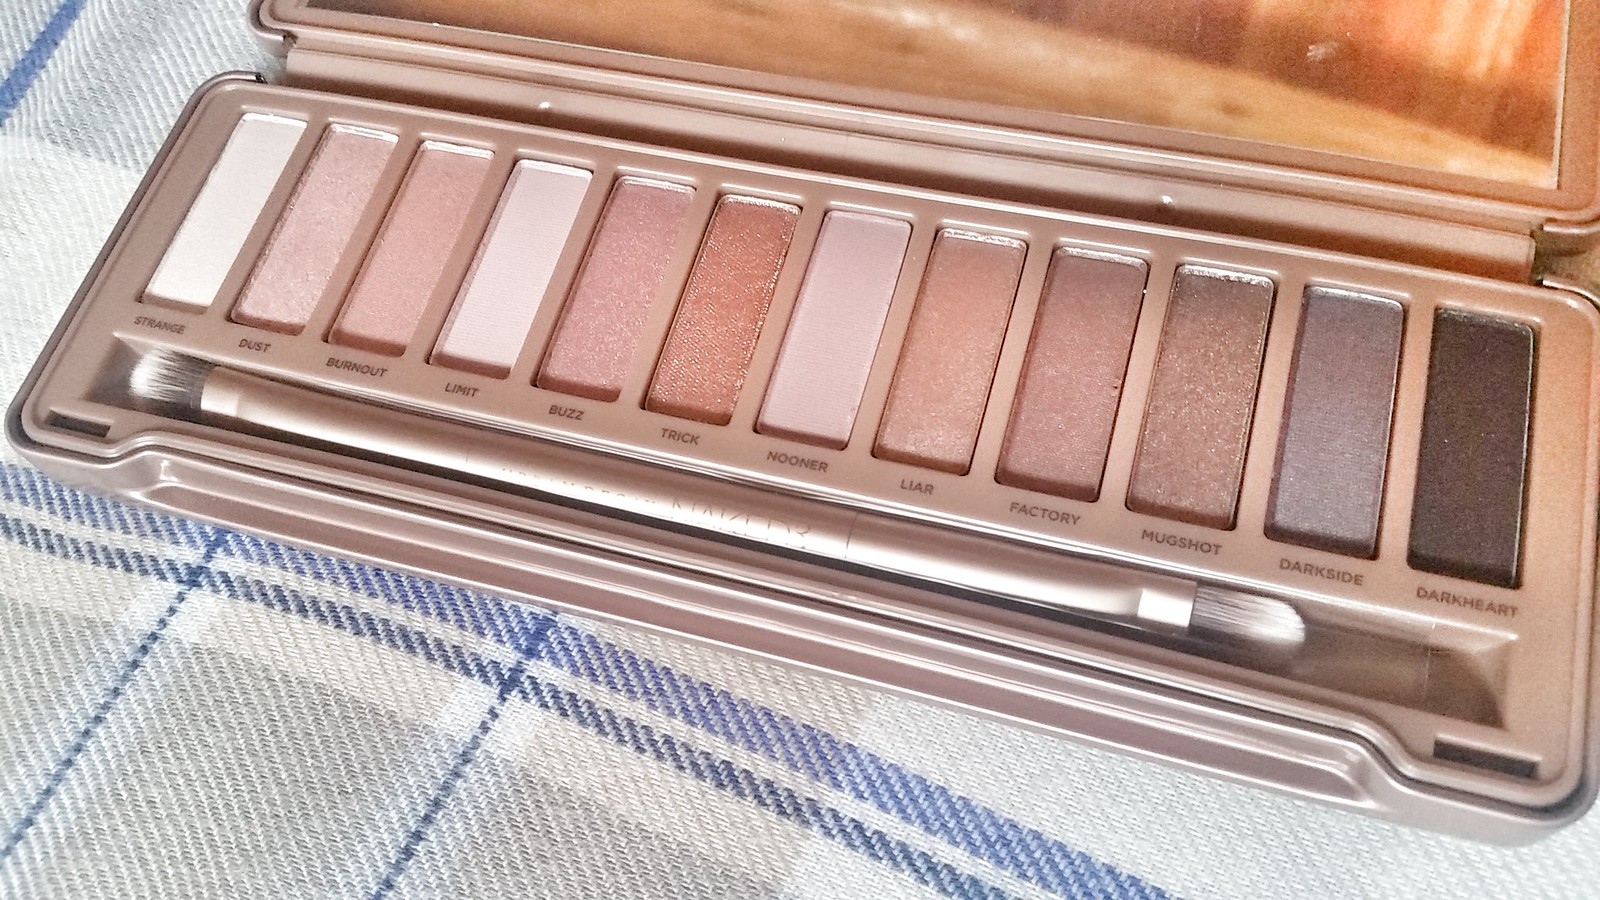 Naked3 shadows